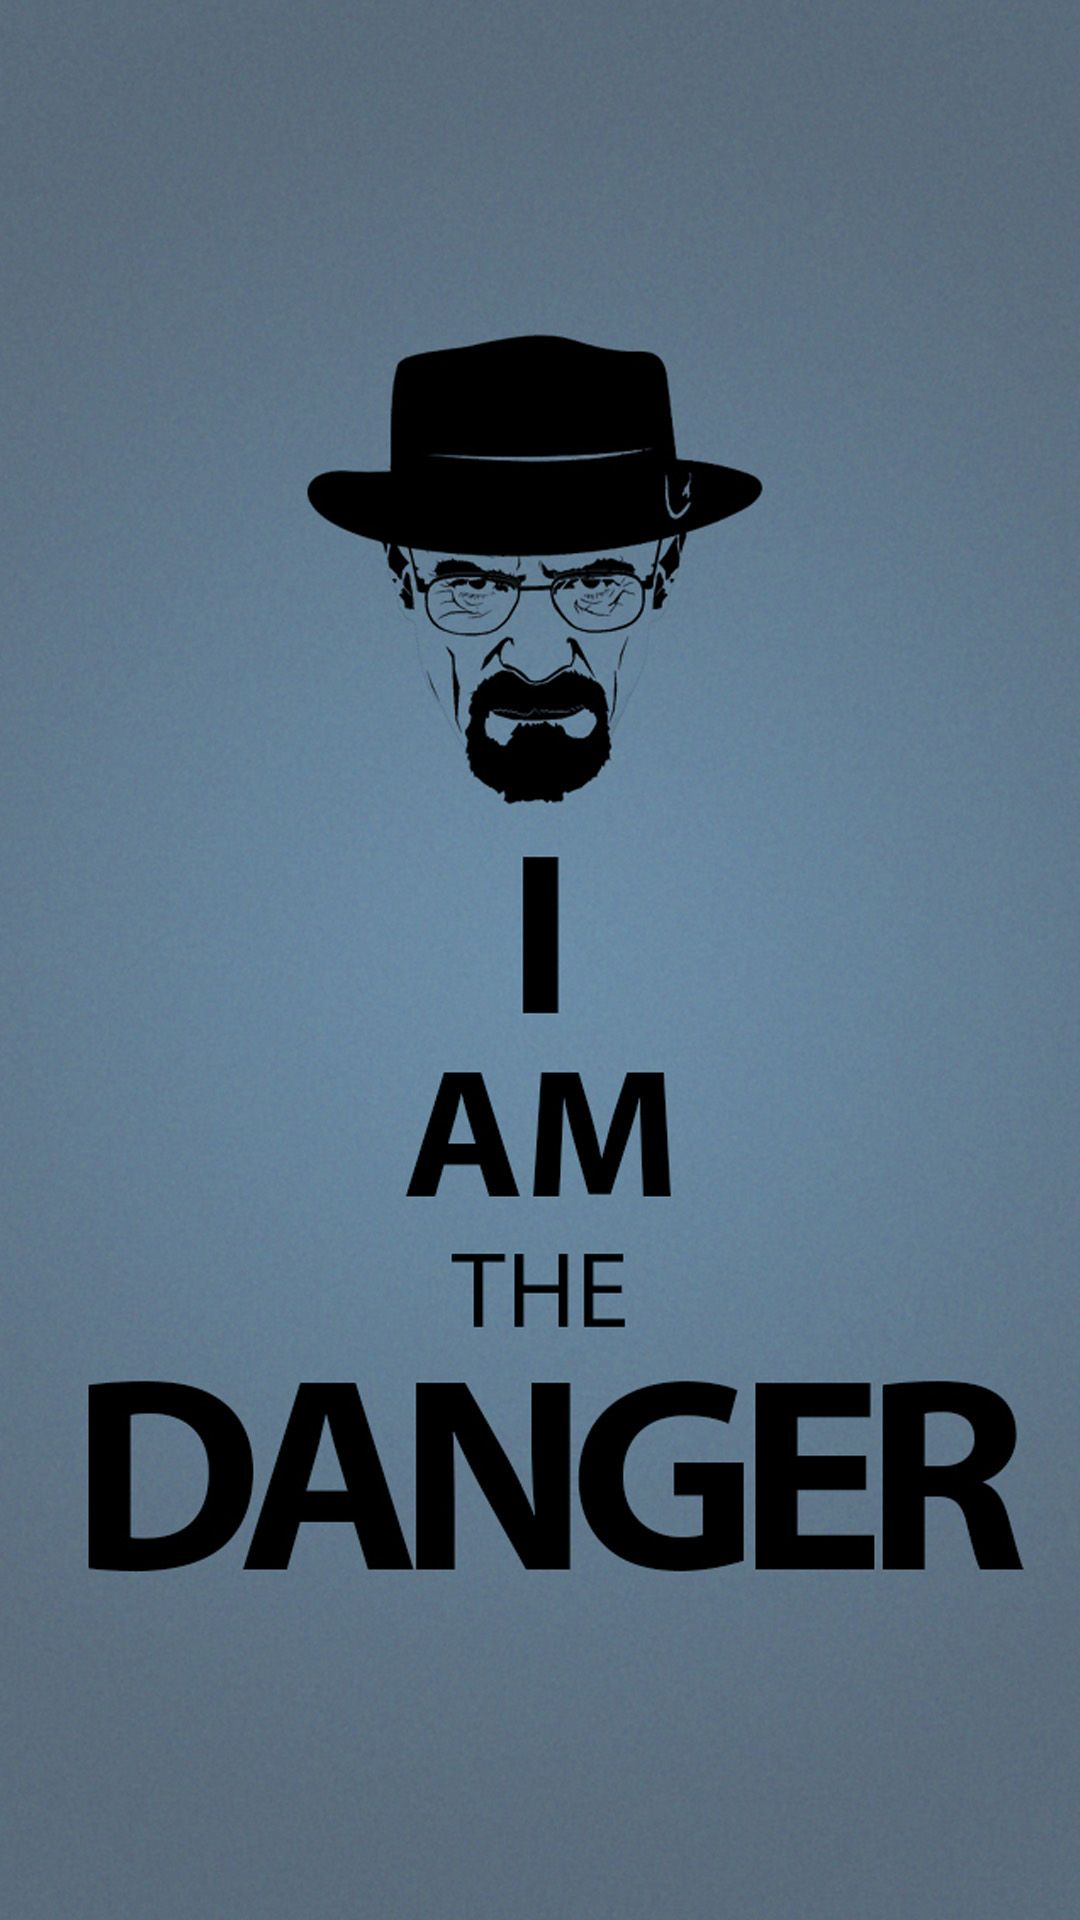 I Am The Danger Iphone 6 Wallpaper Download Iphone Wallpapers Ipad Wallpapers One Stop Download Breaking Bad Poster Breaking Bad Quotes Breaking Bad